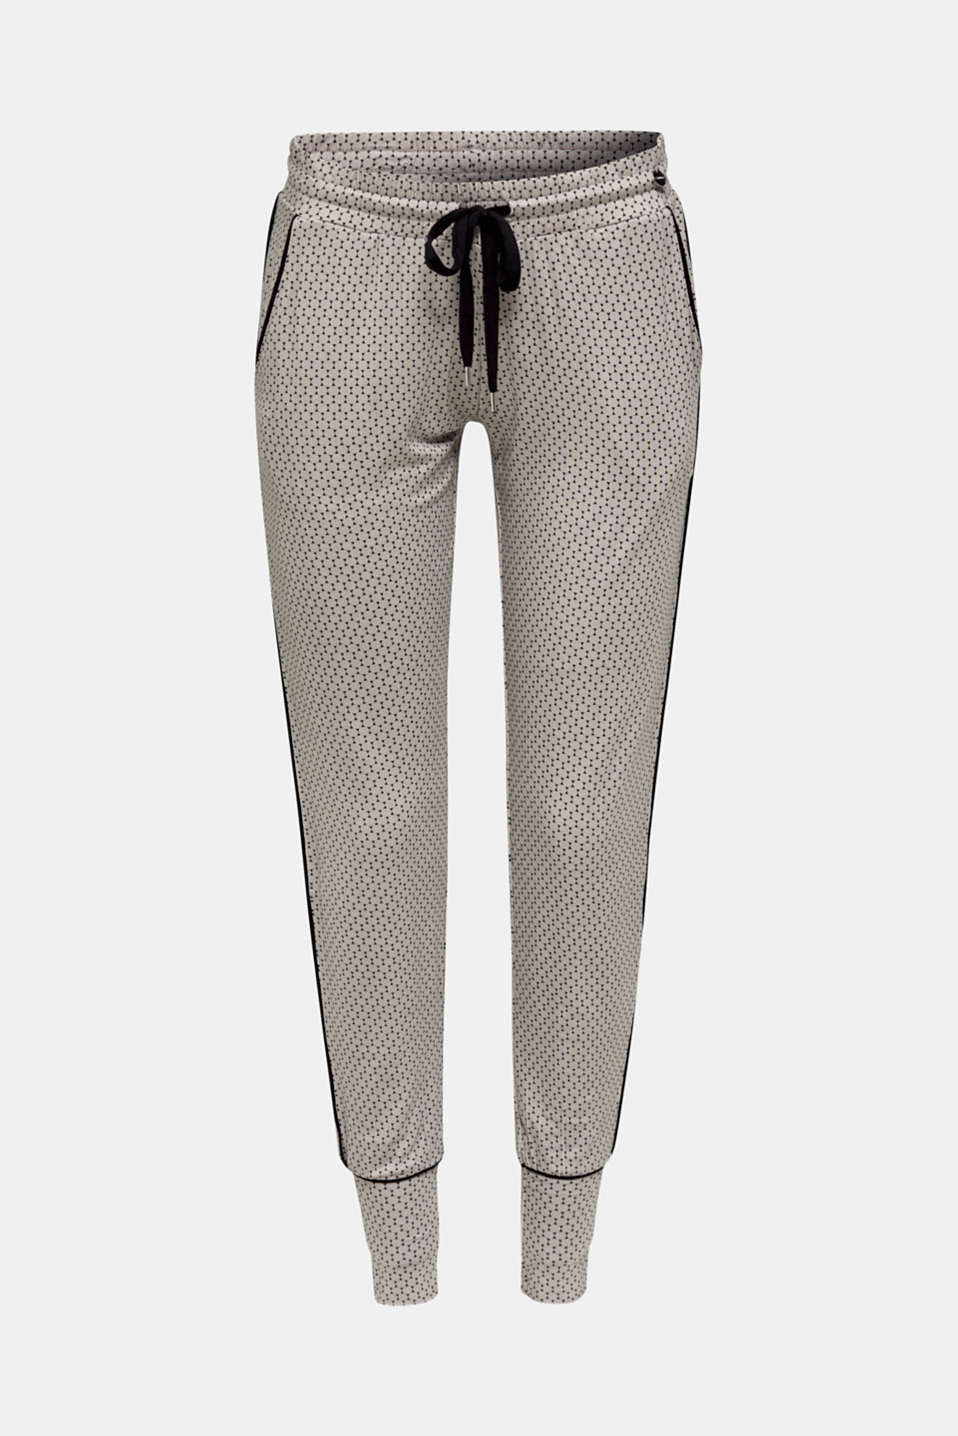 Stretch jersey trousers with a graphic print, LIGHT TAUPE, detail image number 5